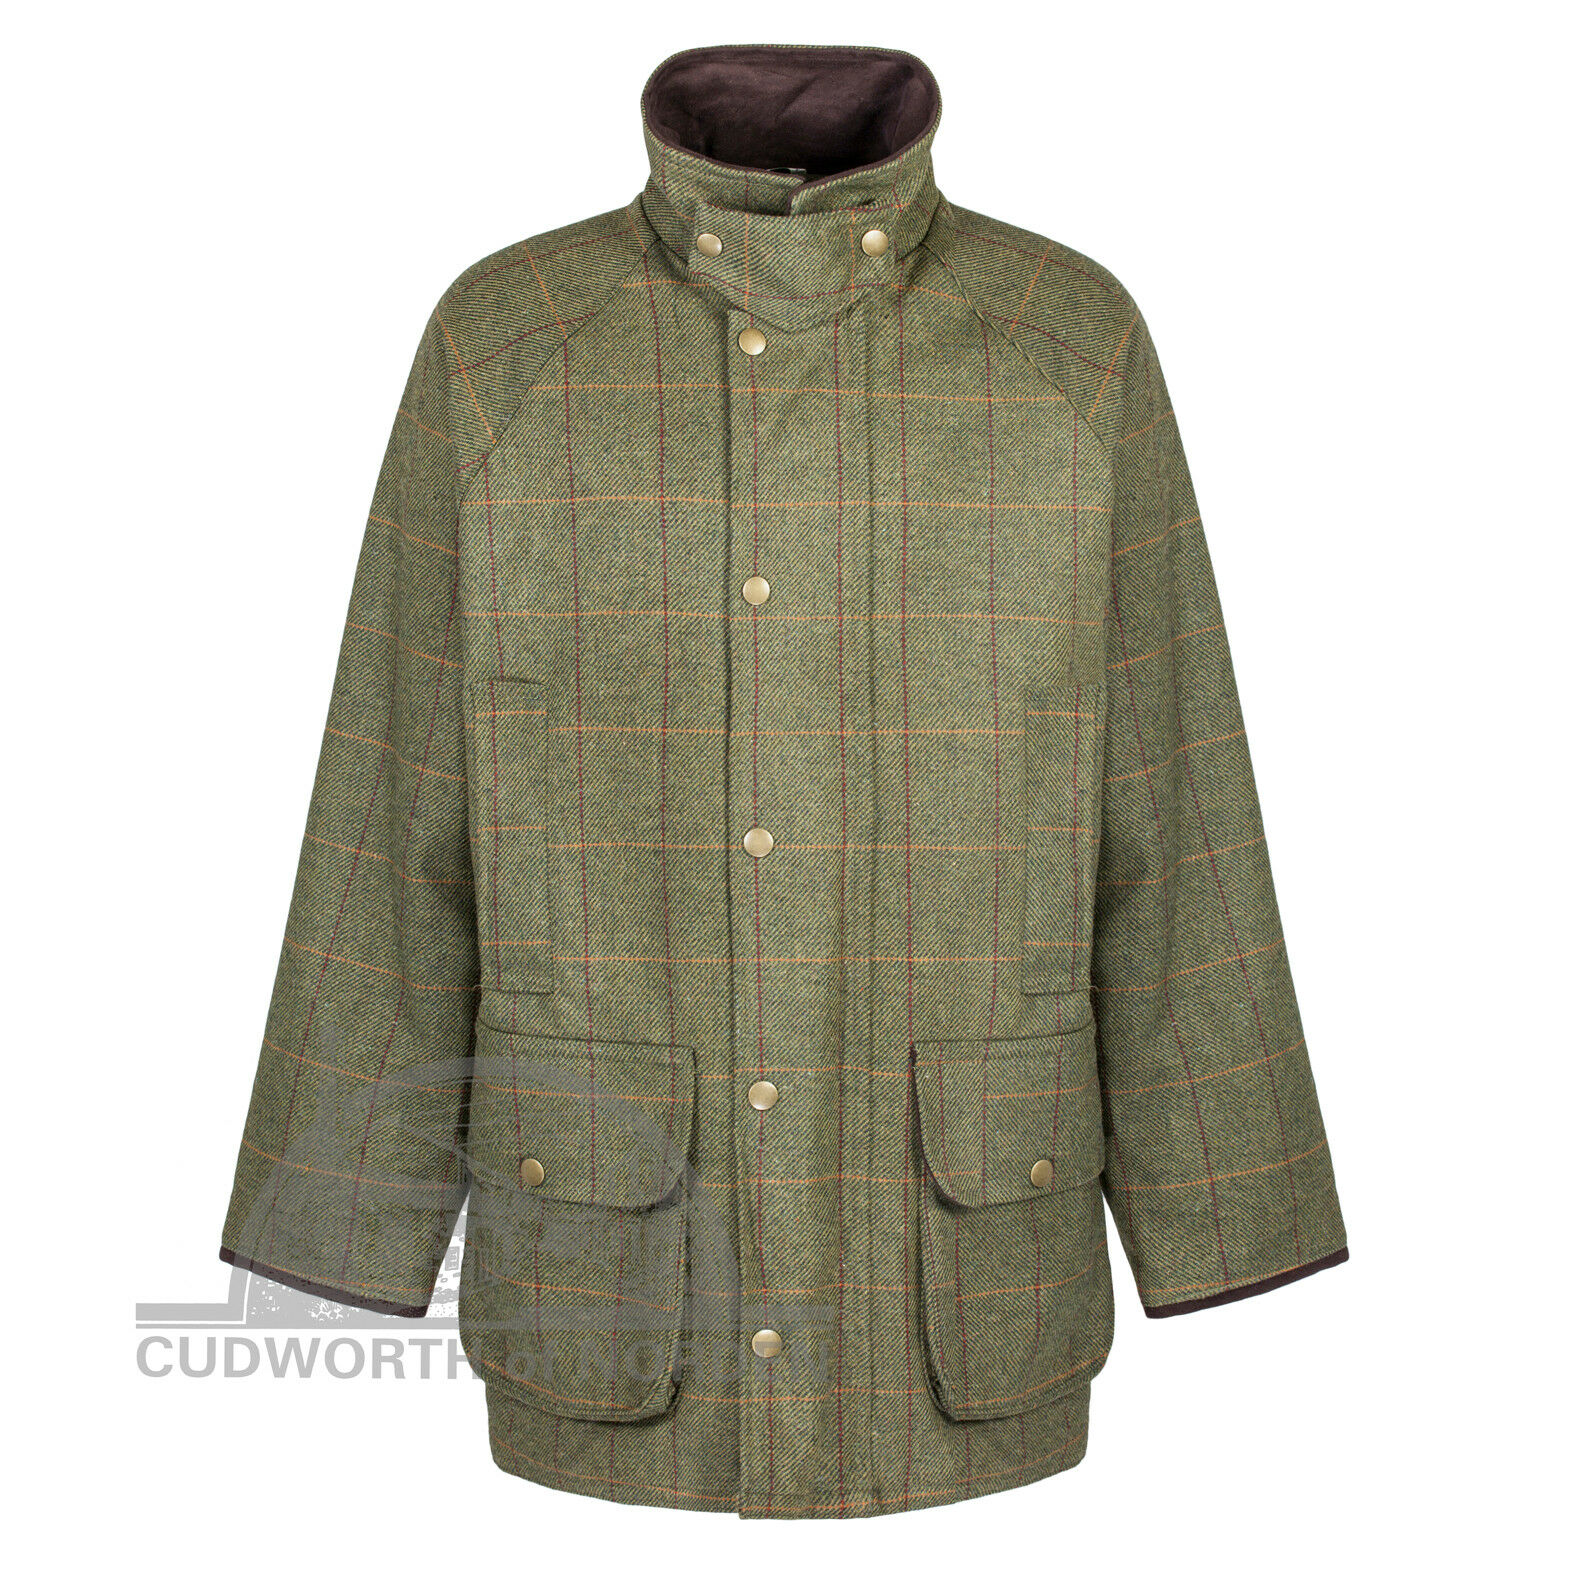 DELUXE WATERPROOF WOOL TWEED COAT SIZE 2XL LAST REDUCTION MASSIVE BARGAIN